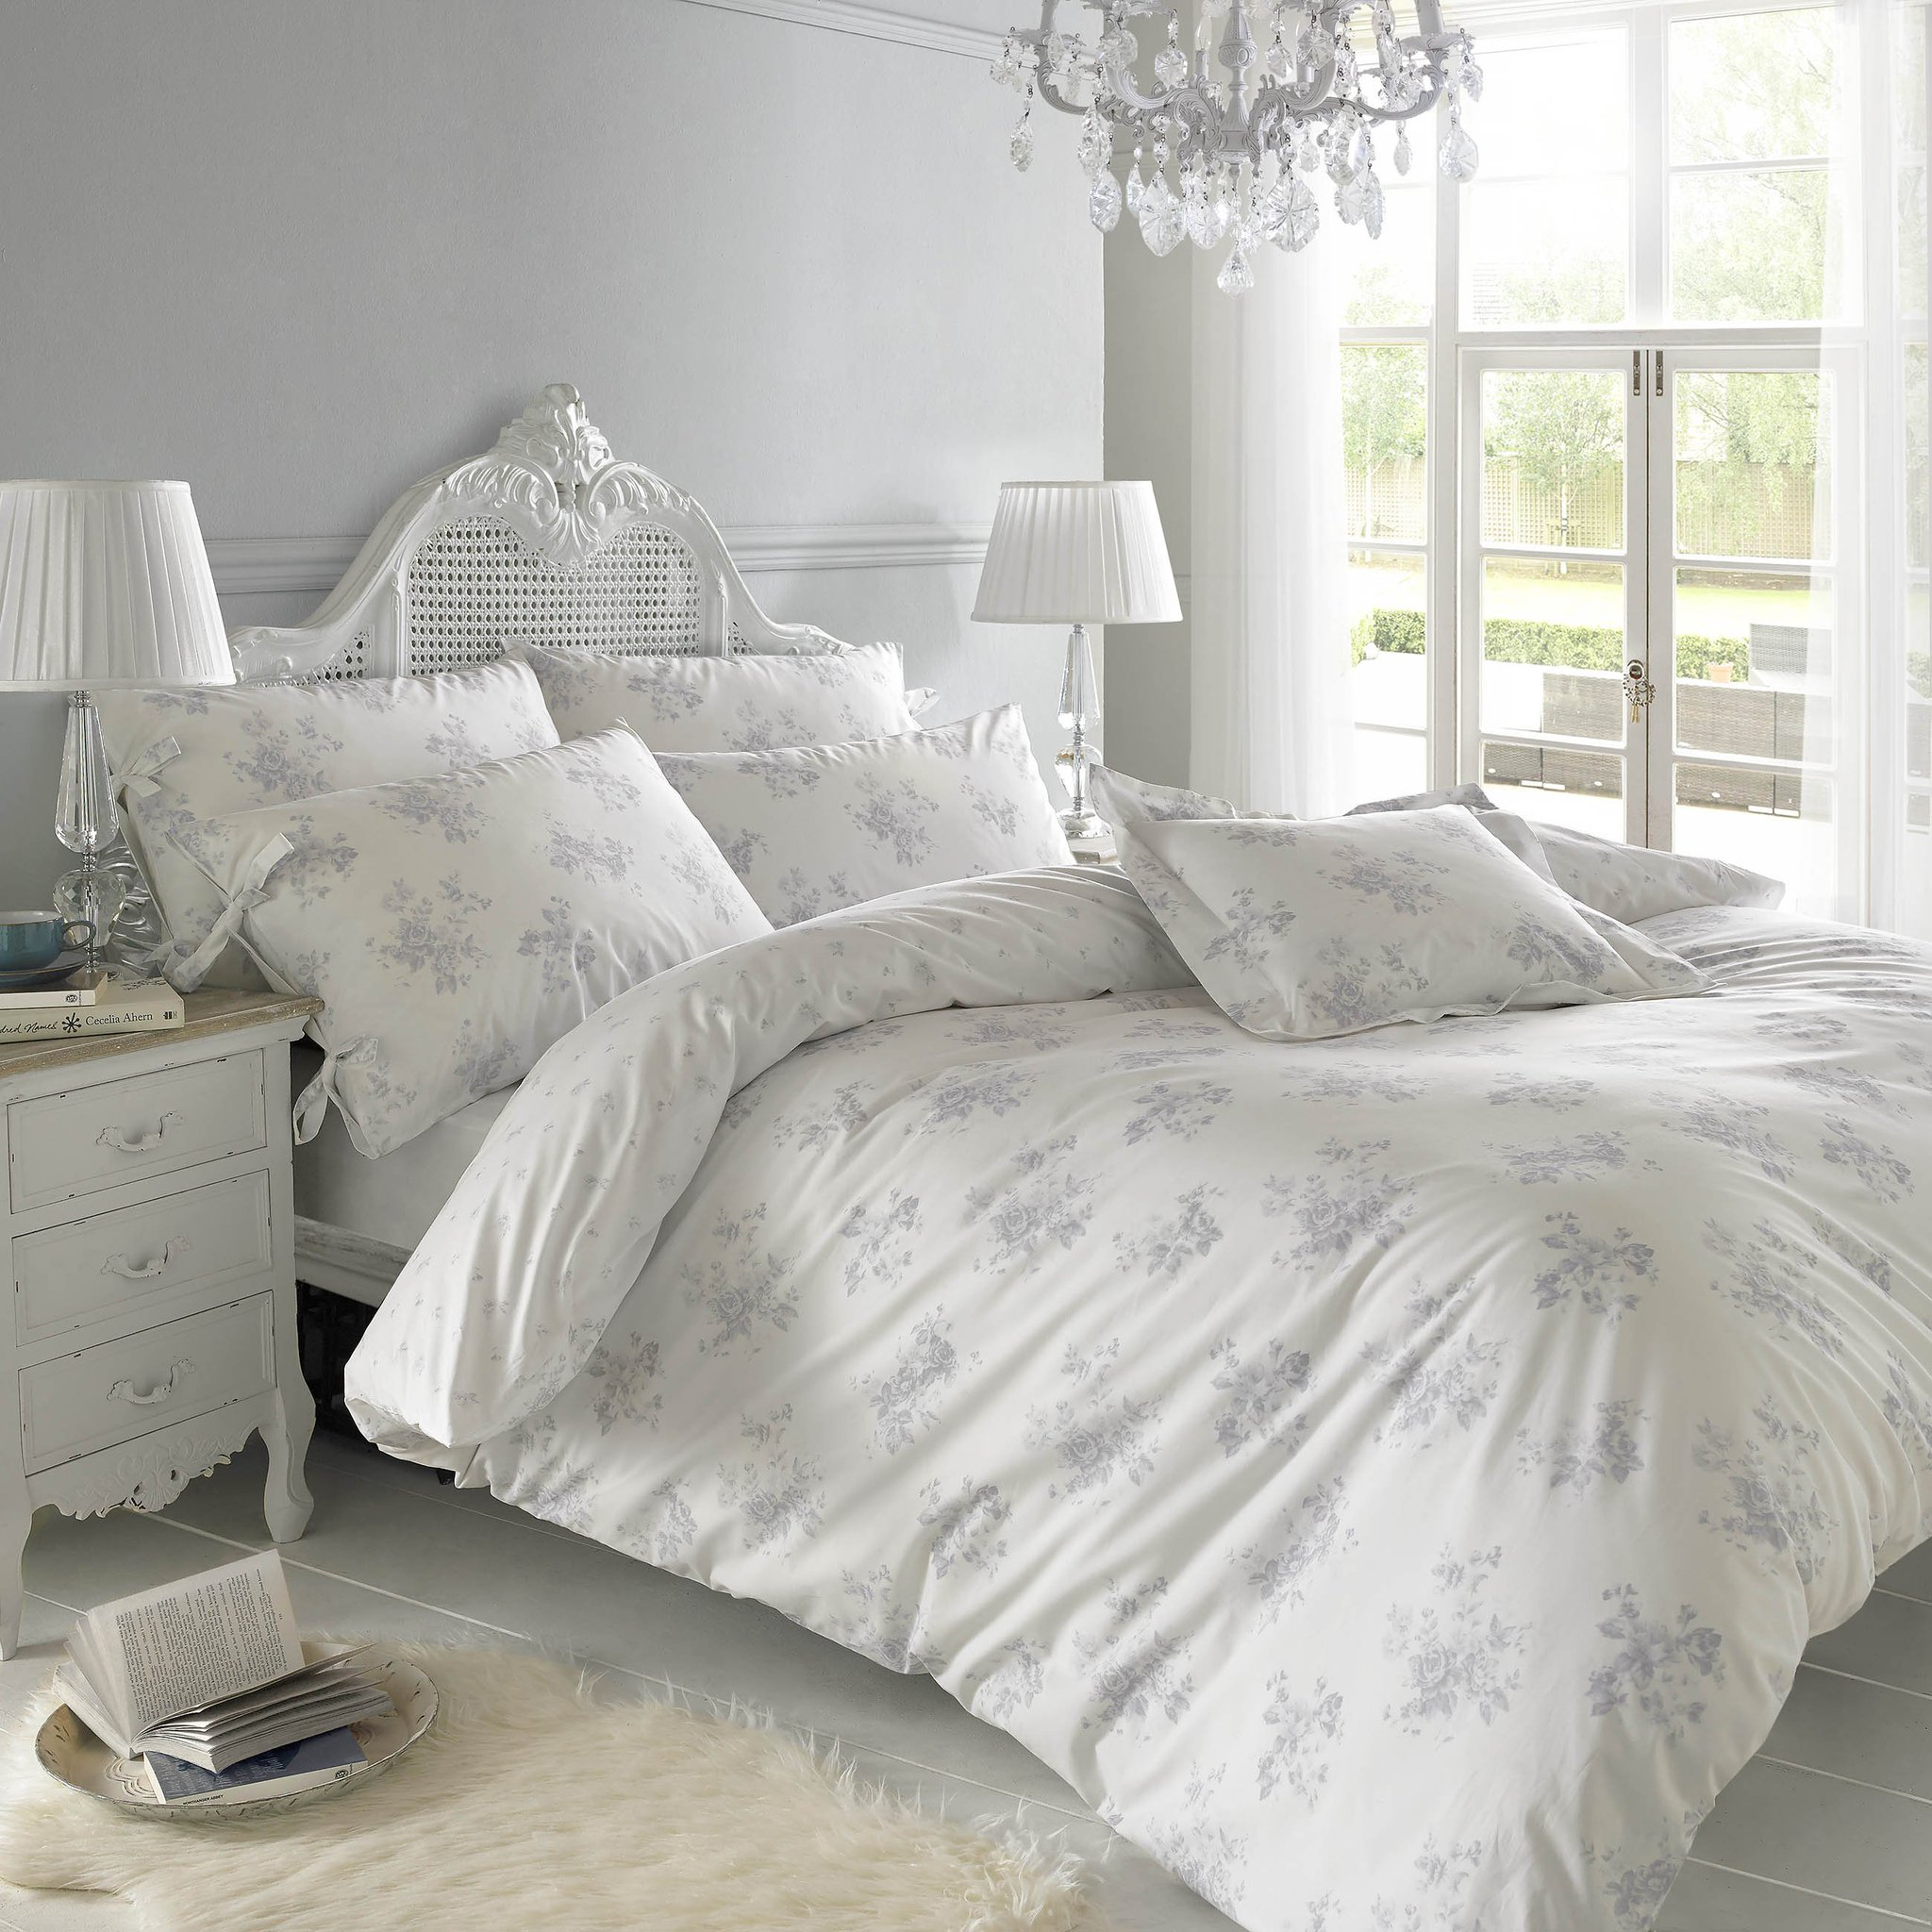 Can I please do This Morning from this bed @DunelmUK?! xx https://t.co/PhmNCPqd6D #ad https://t.co/MiLKTDiQln